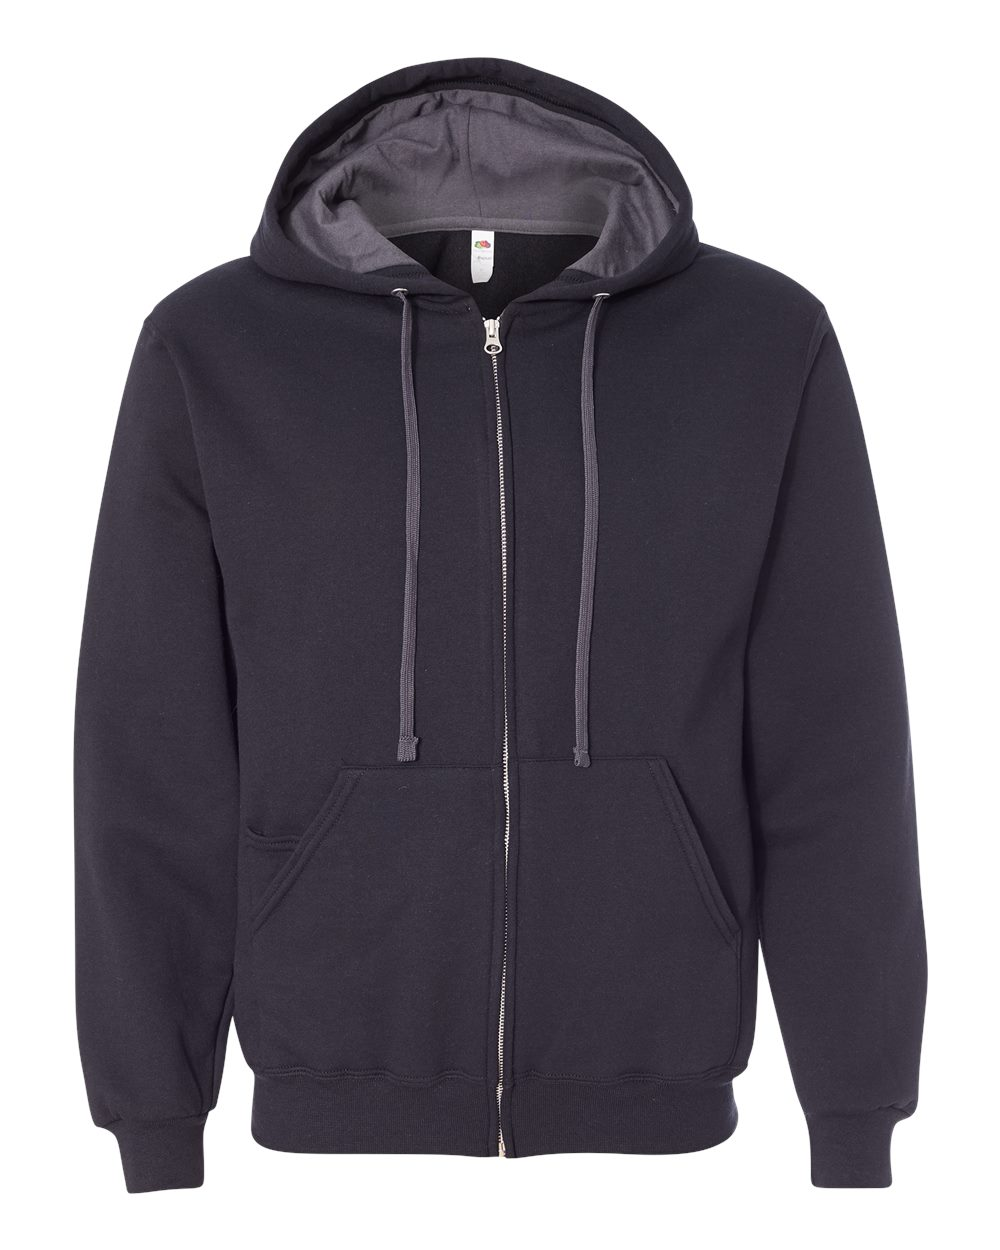 Fruit-of-the-Loom-Mens-Sofspun-Hooded-Full-Zip-Sweatshirt-Blank-SF73R-up-to-3XL thumbnail 12